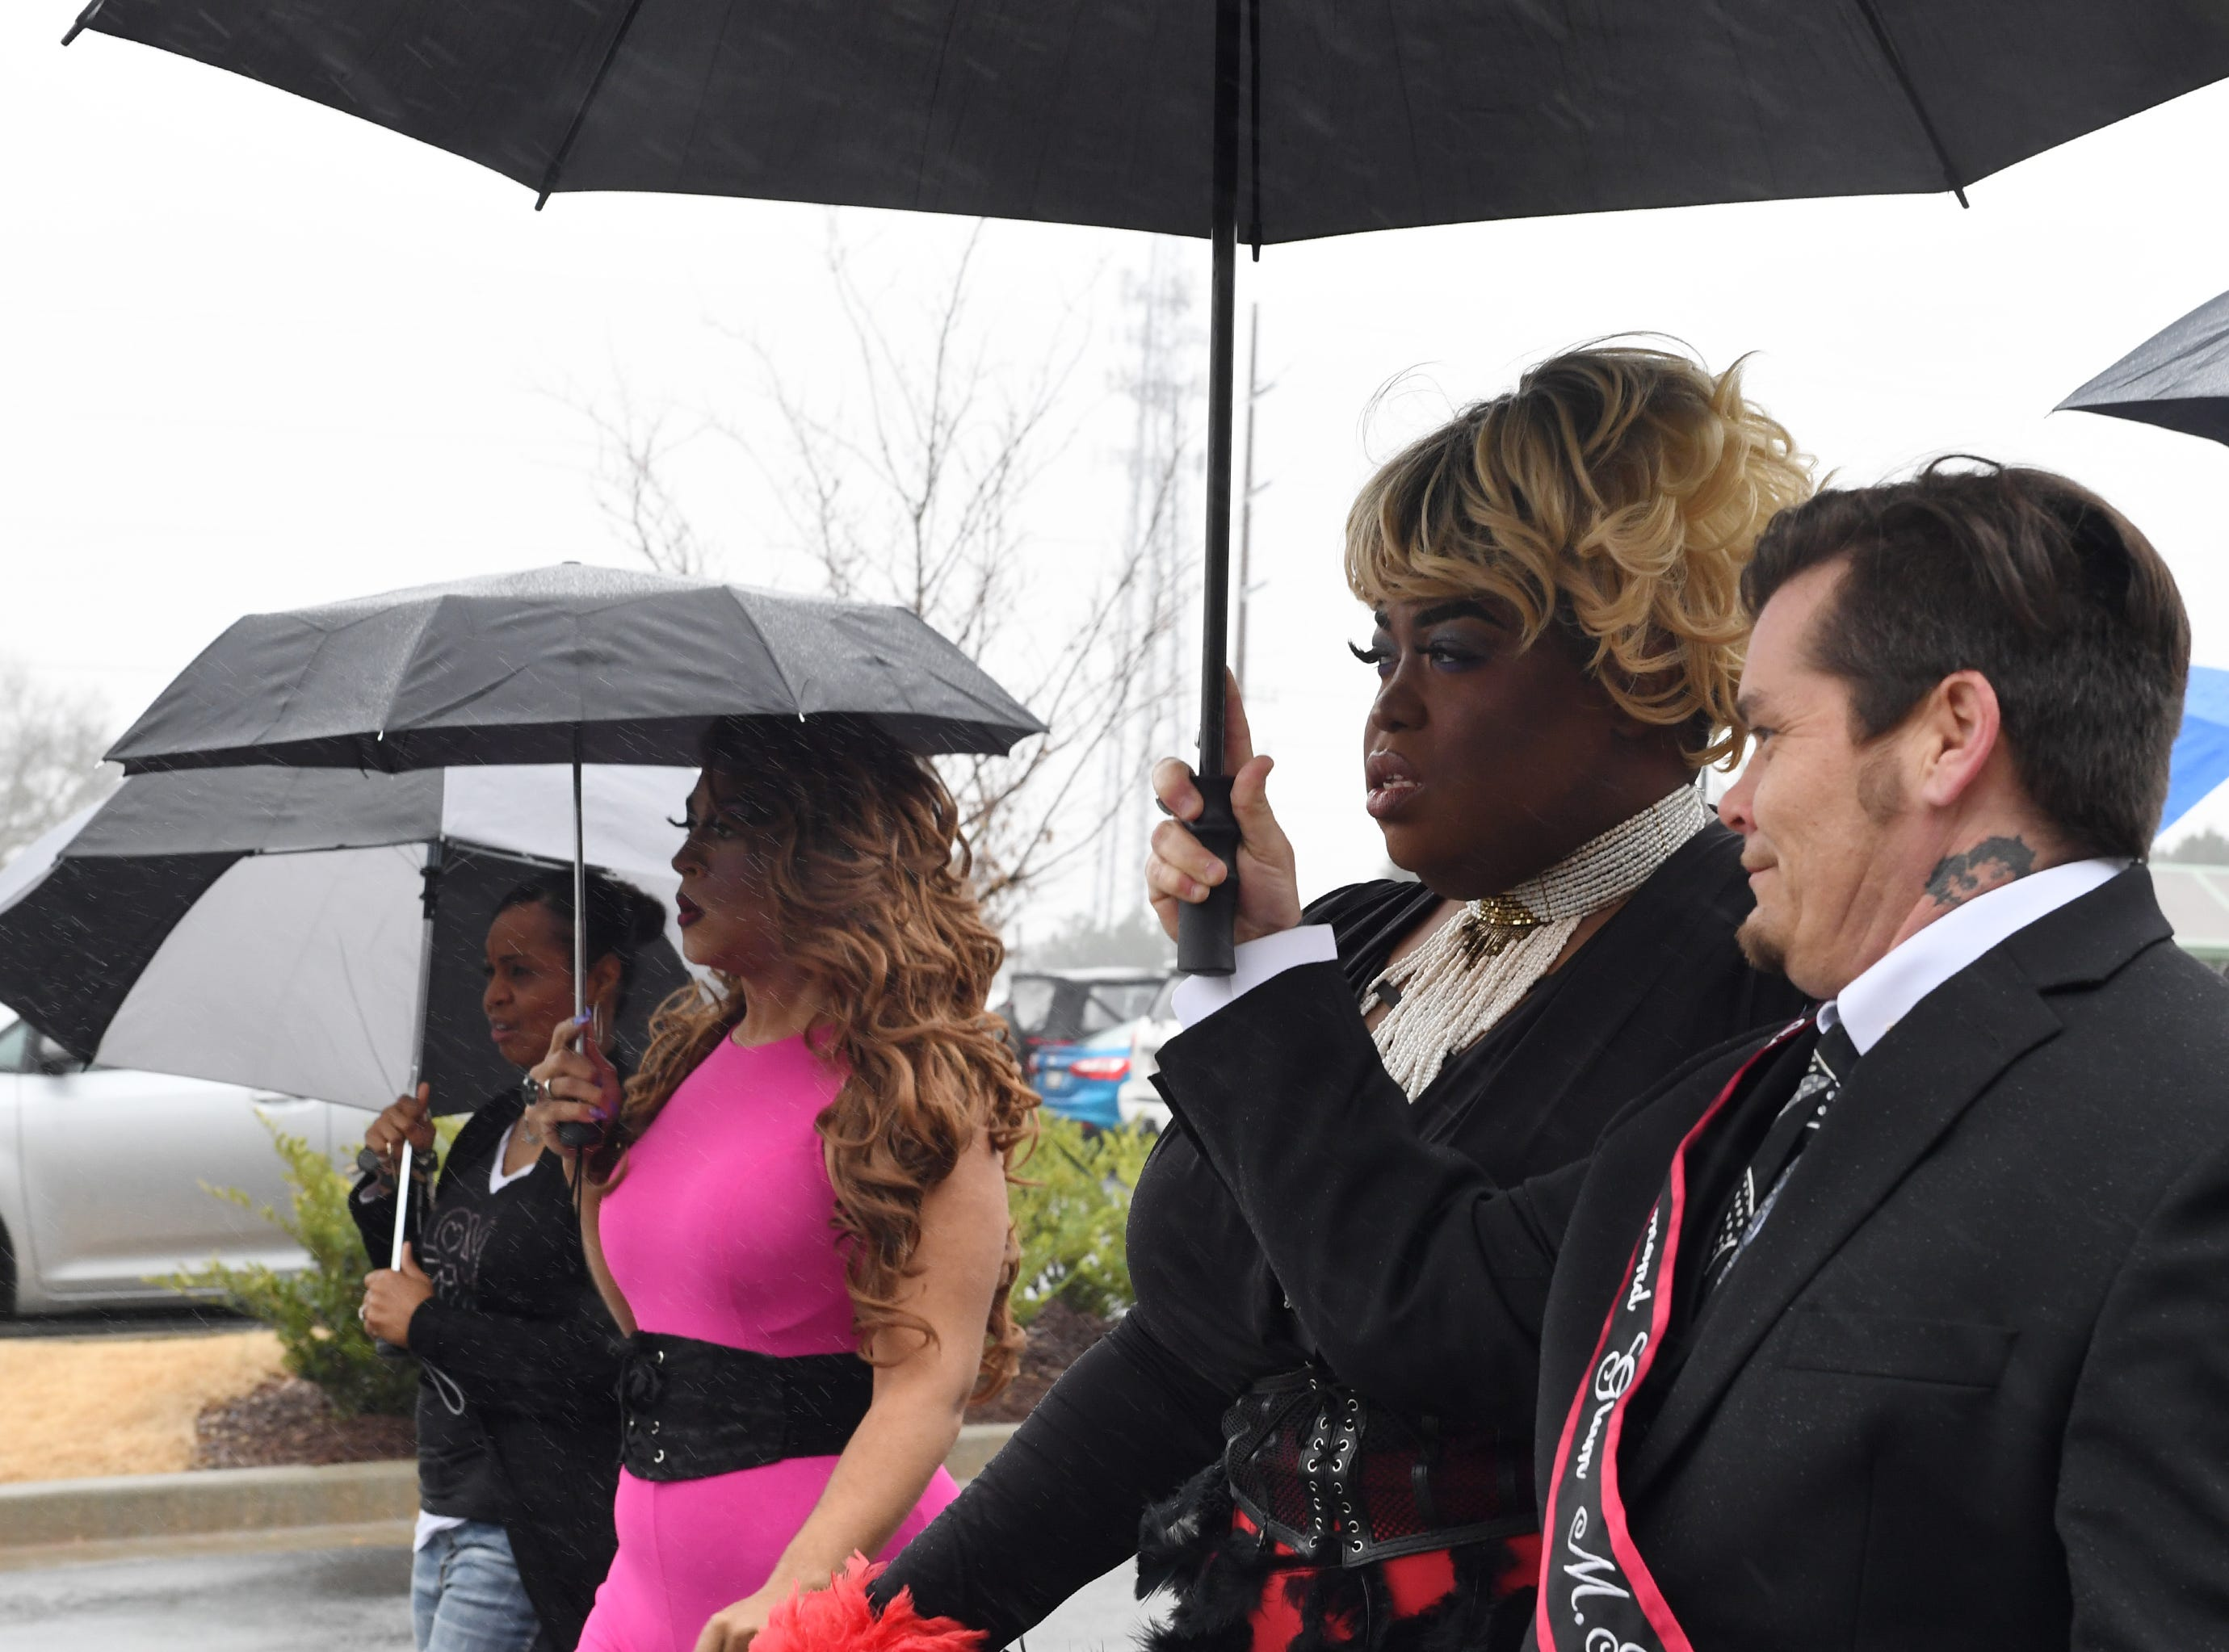 People dressed in drag walk to Five Forks Branch Library to prepare for Drag Queen Story Hour Sunday, Feb. 17, 2019.